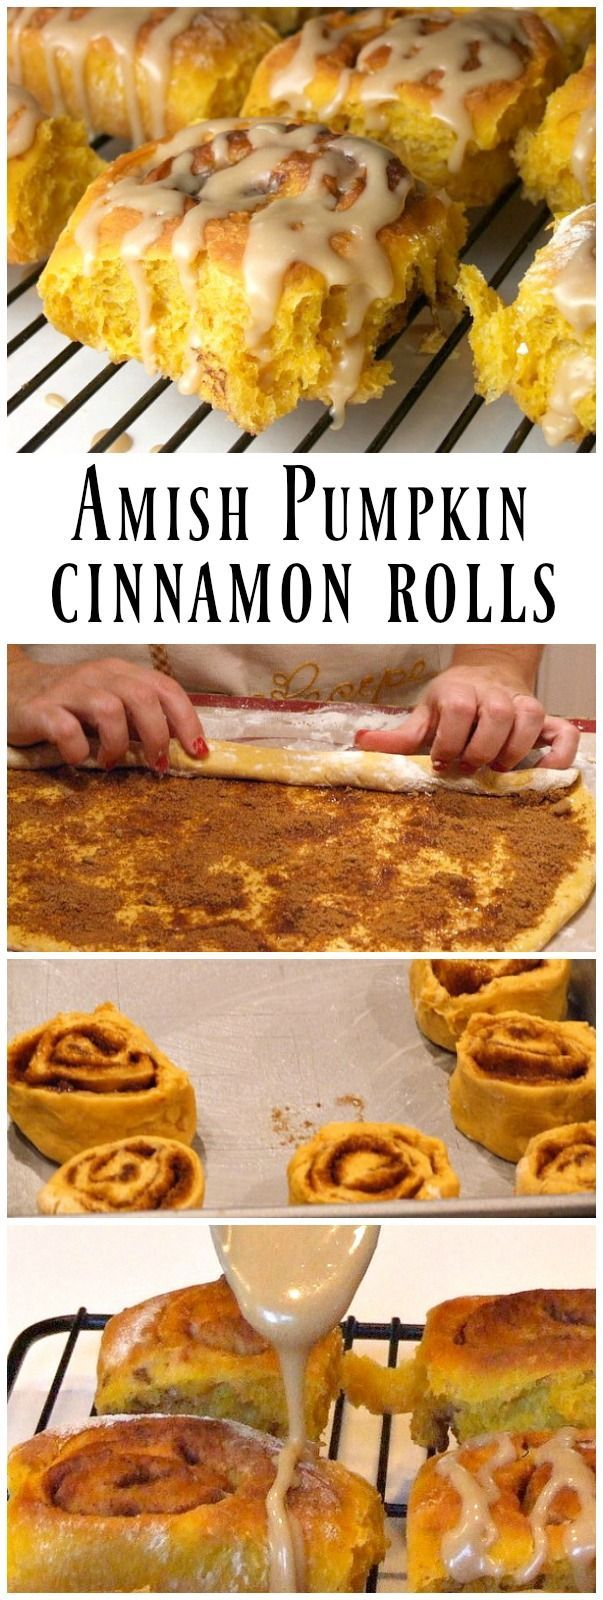 Amish Pumpkin Cinnamon Rolls - recipe from RecipeGirl.com